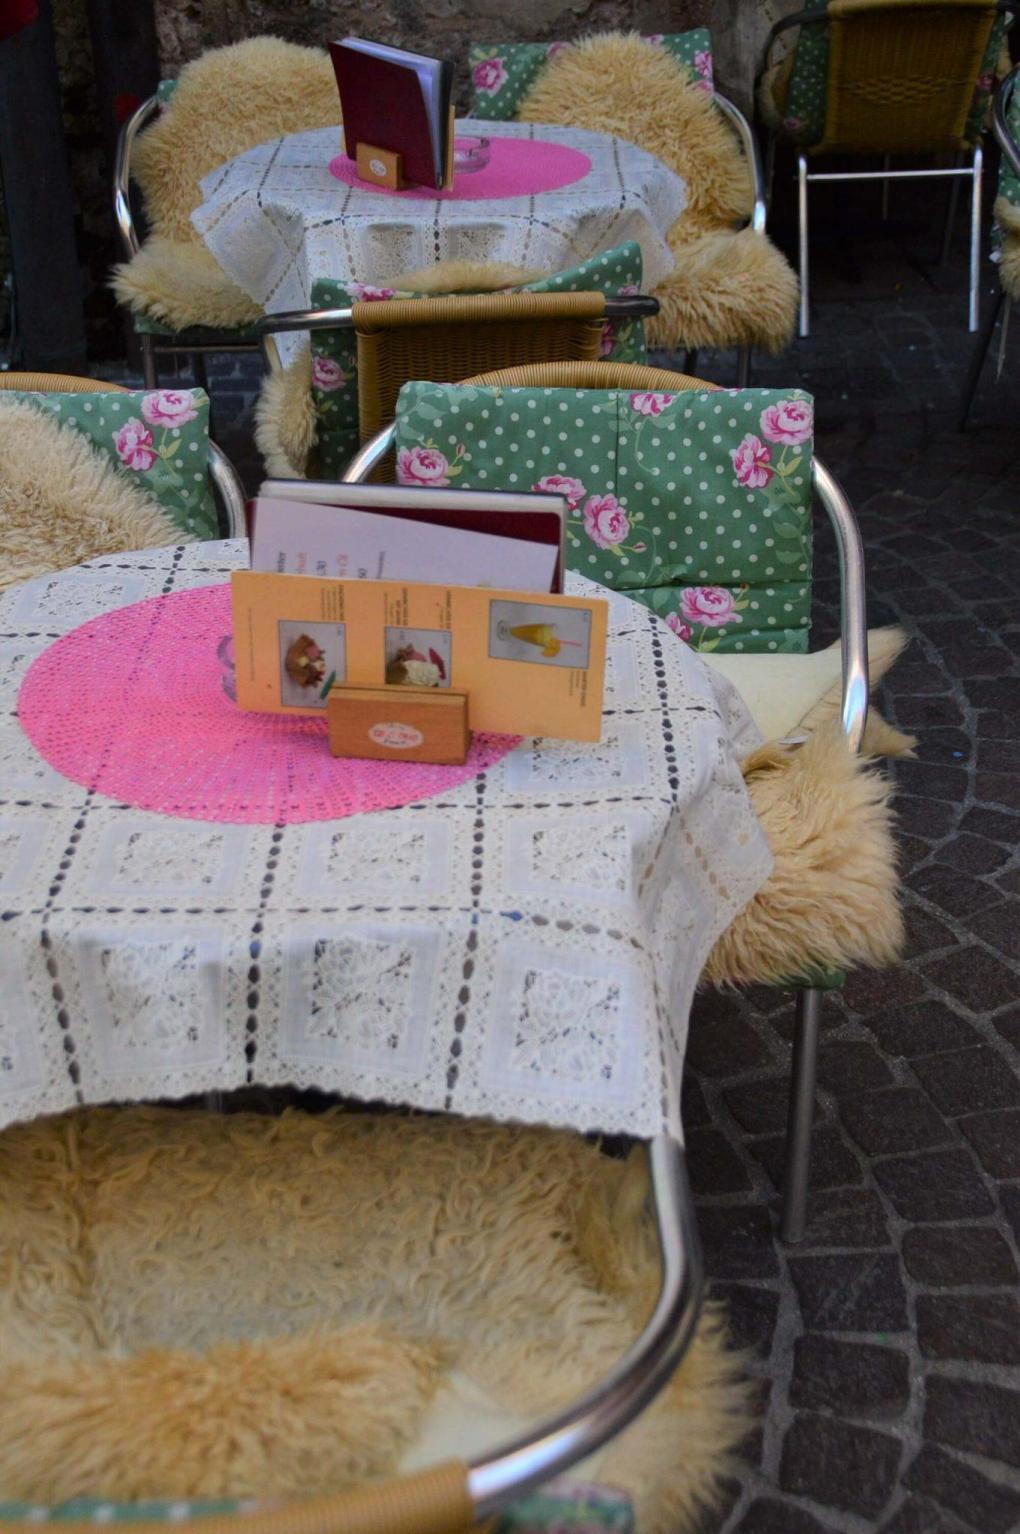 chairs and tables with wooly and colourful rugs and cusshions innsbruck